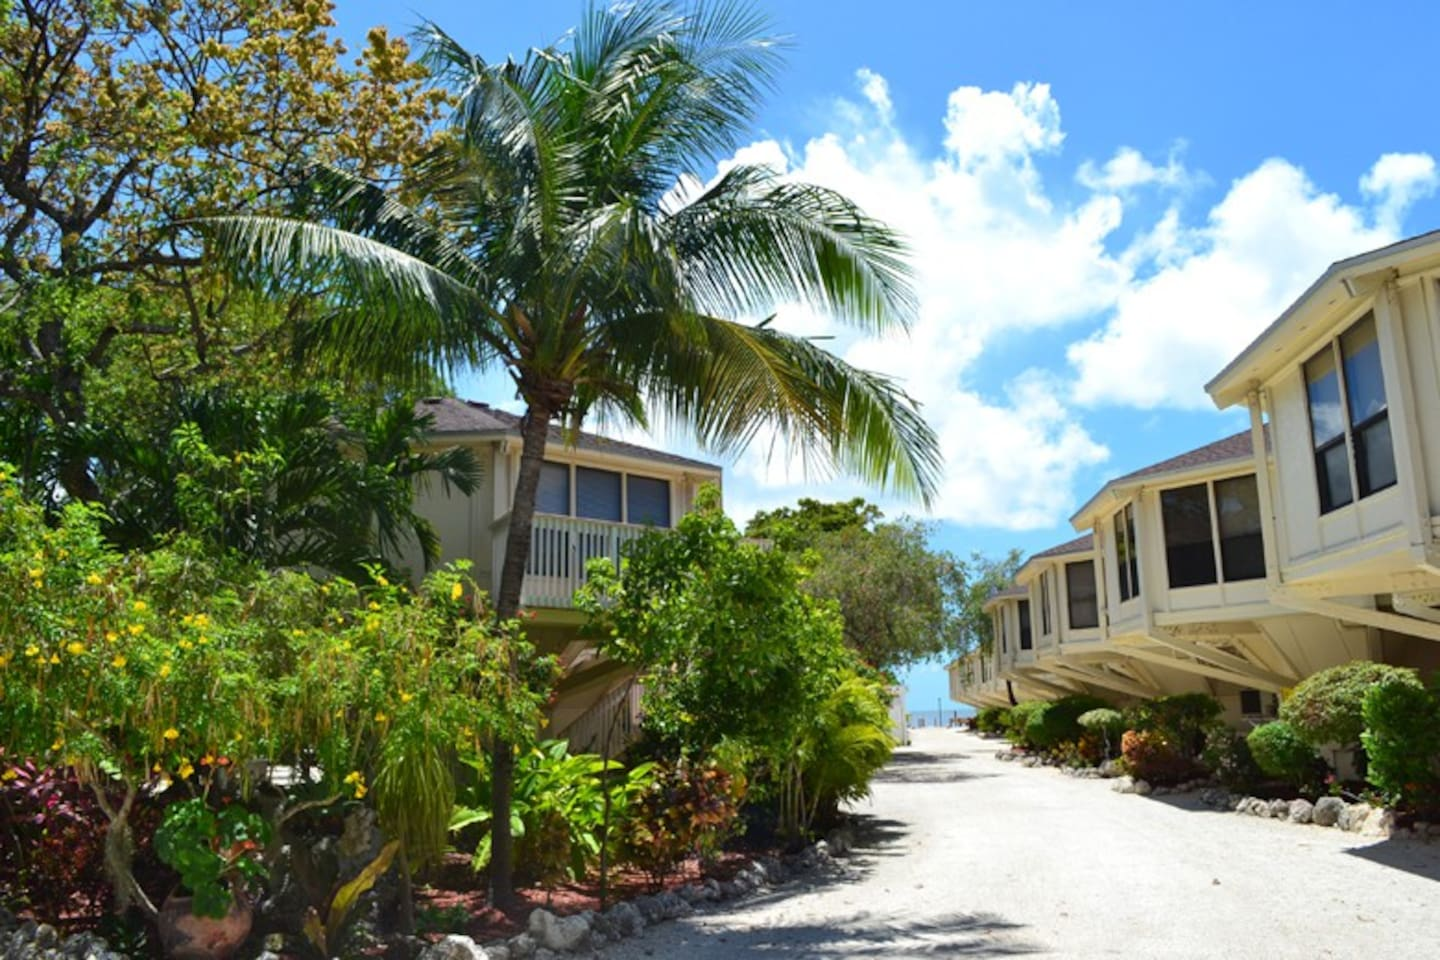 2 bedroom villas at The Reef in Marathon, FL